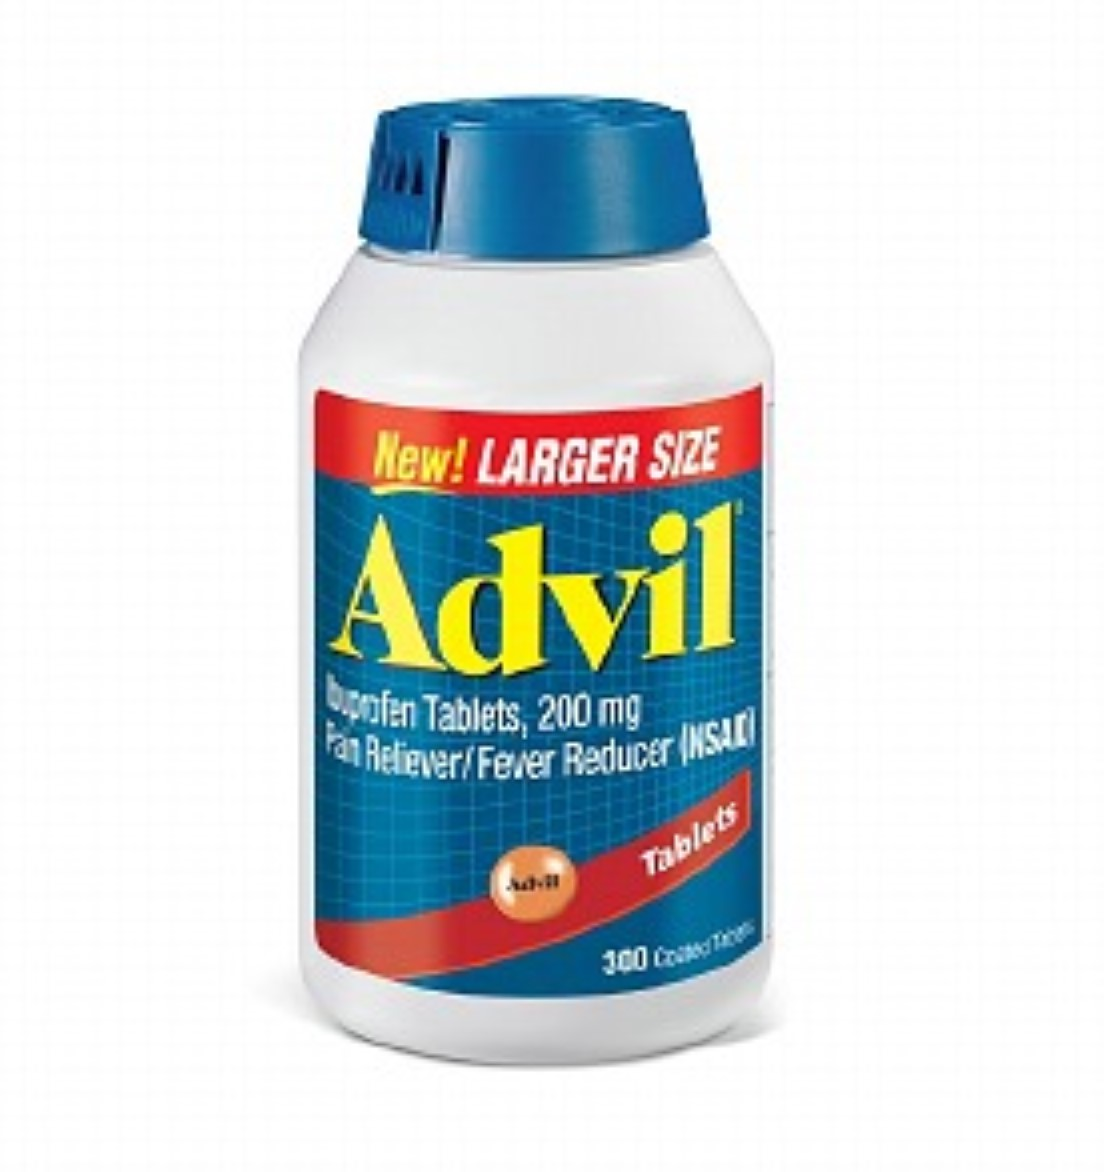 Advil Ibuprofen Coated Tablets, 200mg 300 tabs (Pack of 2)